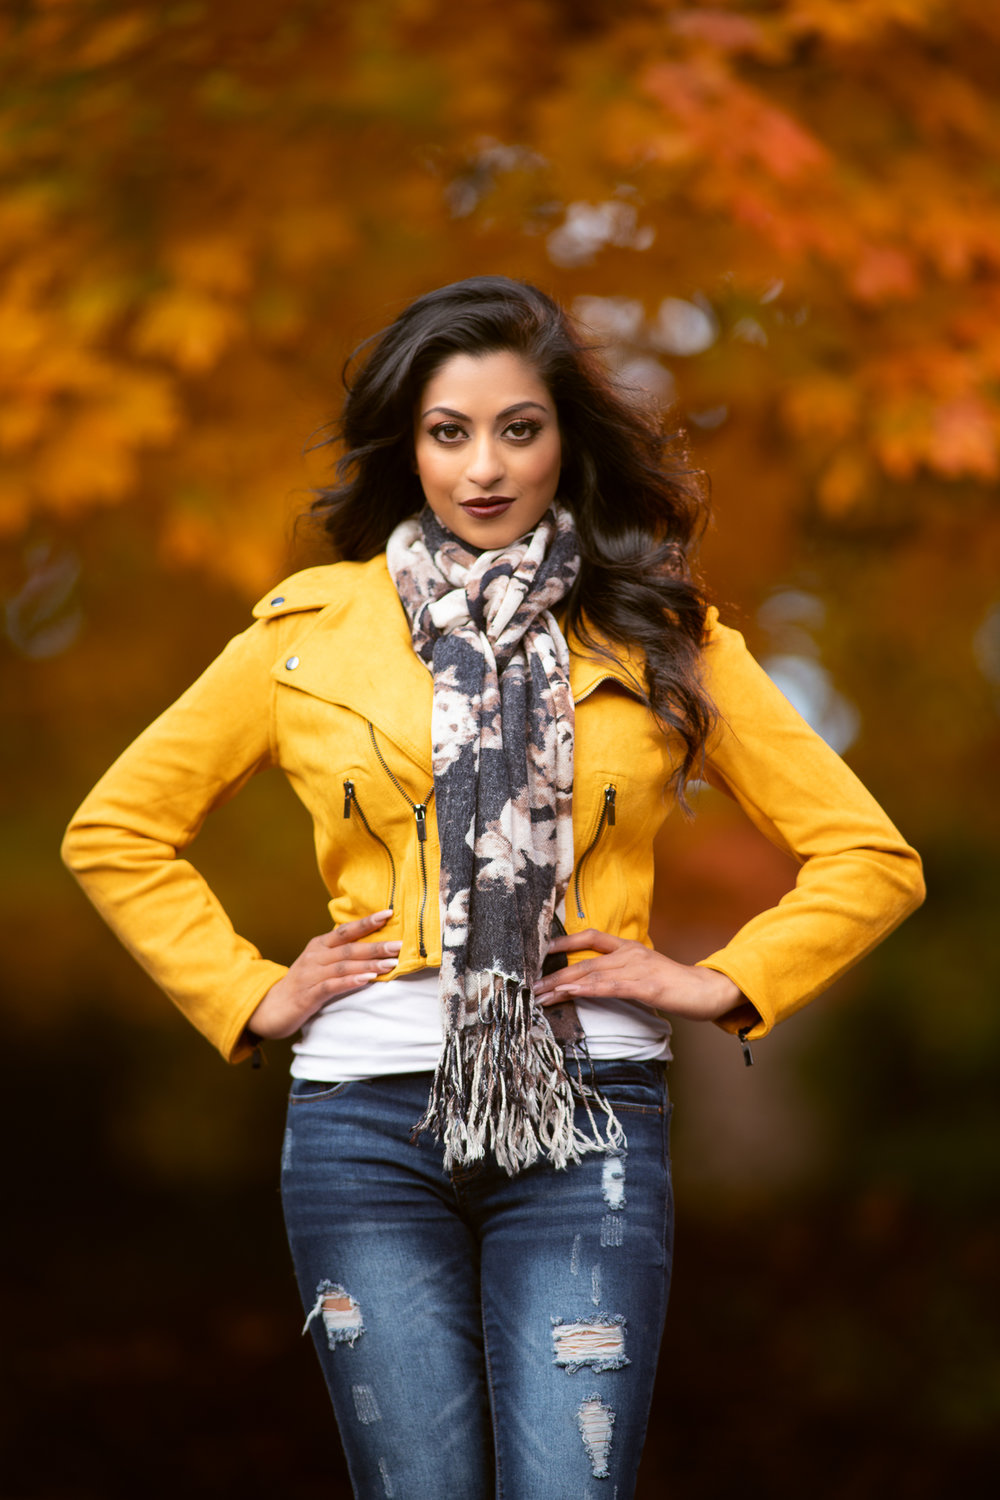 Atlanta Fall Color Photo shoot